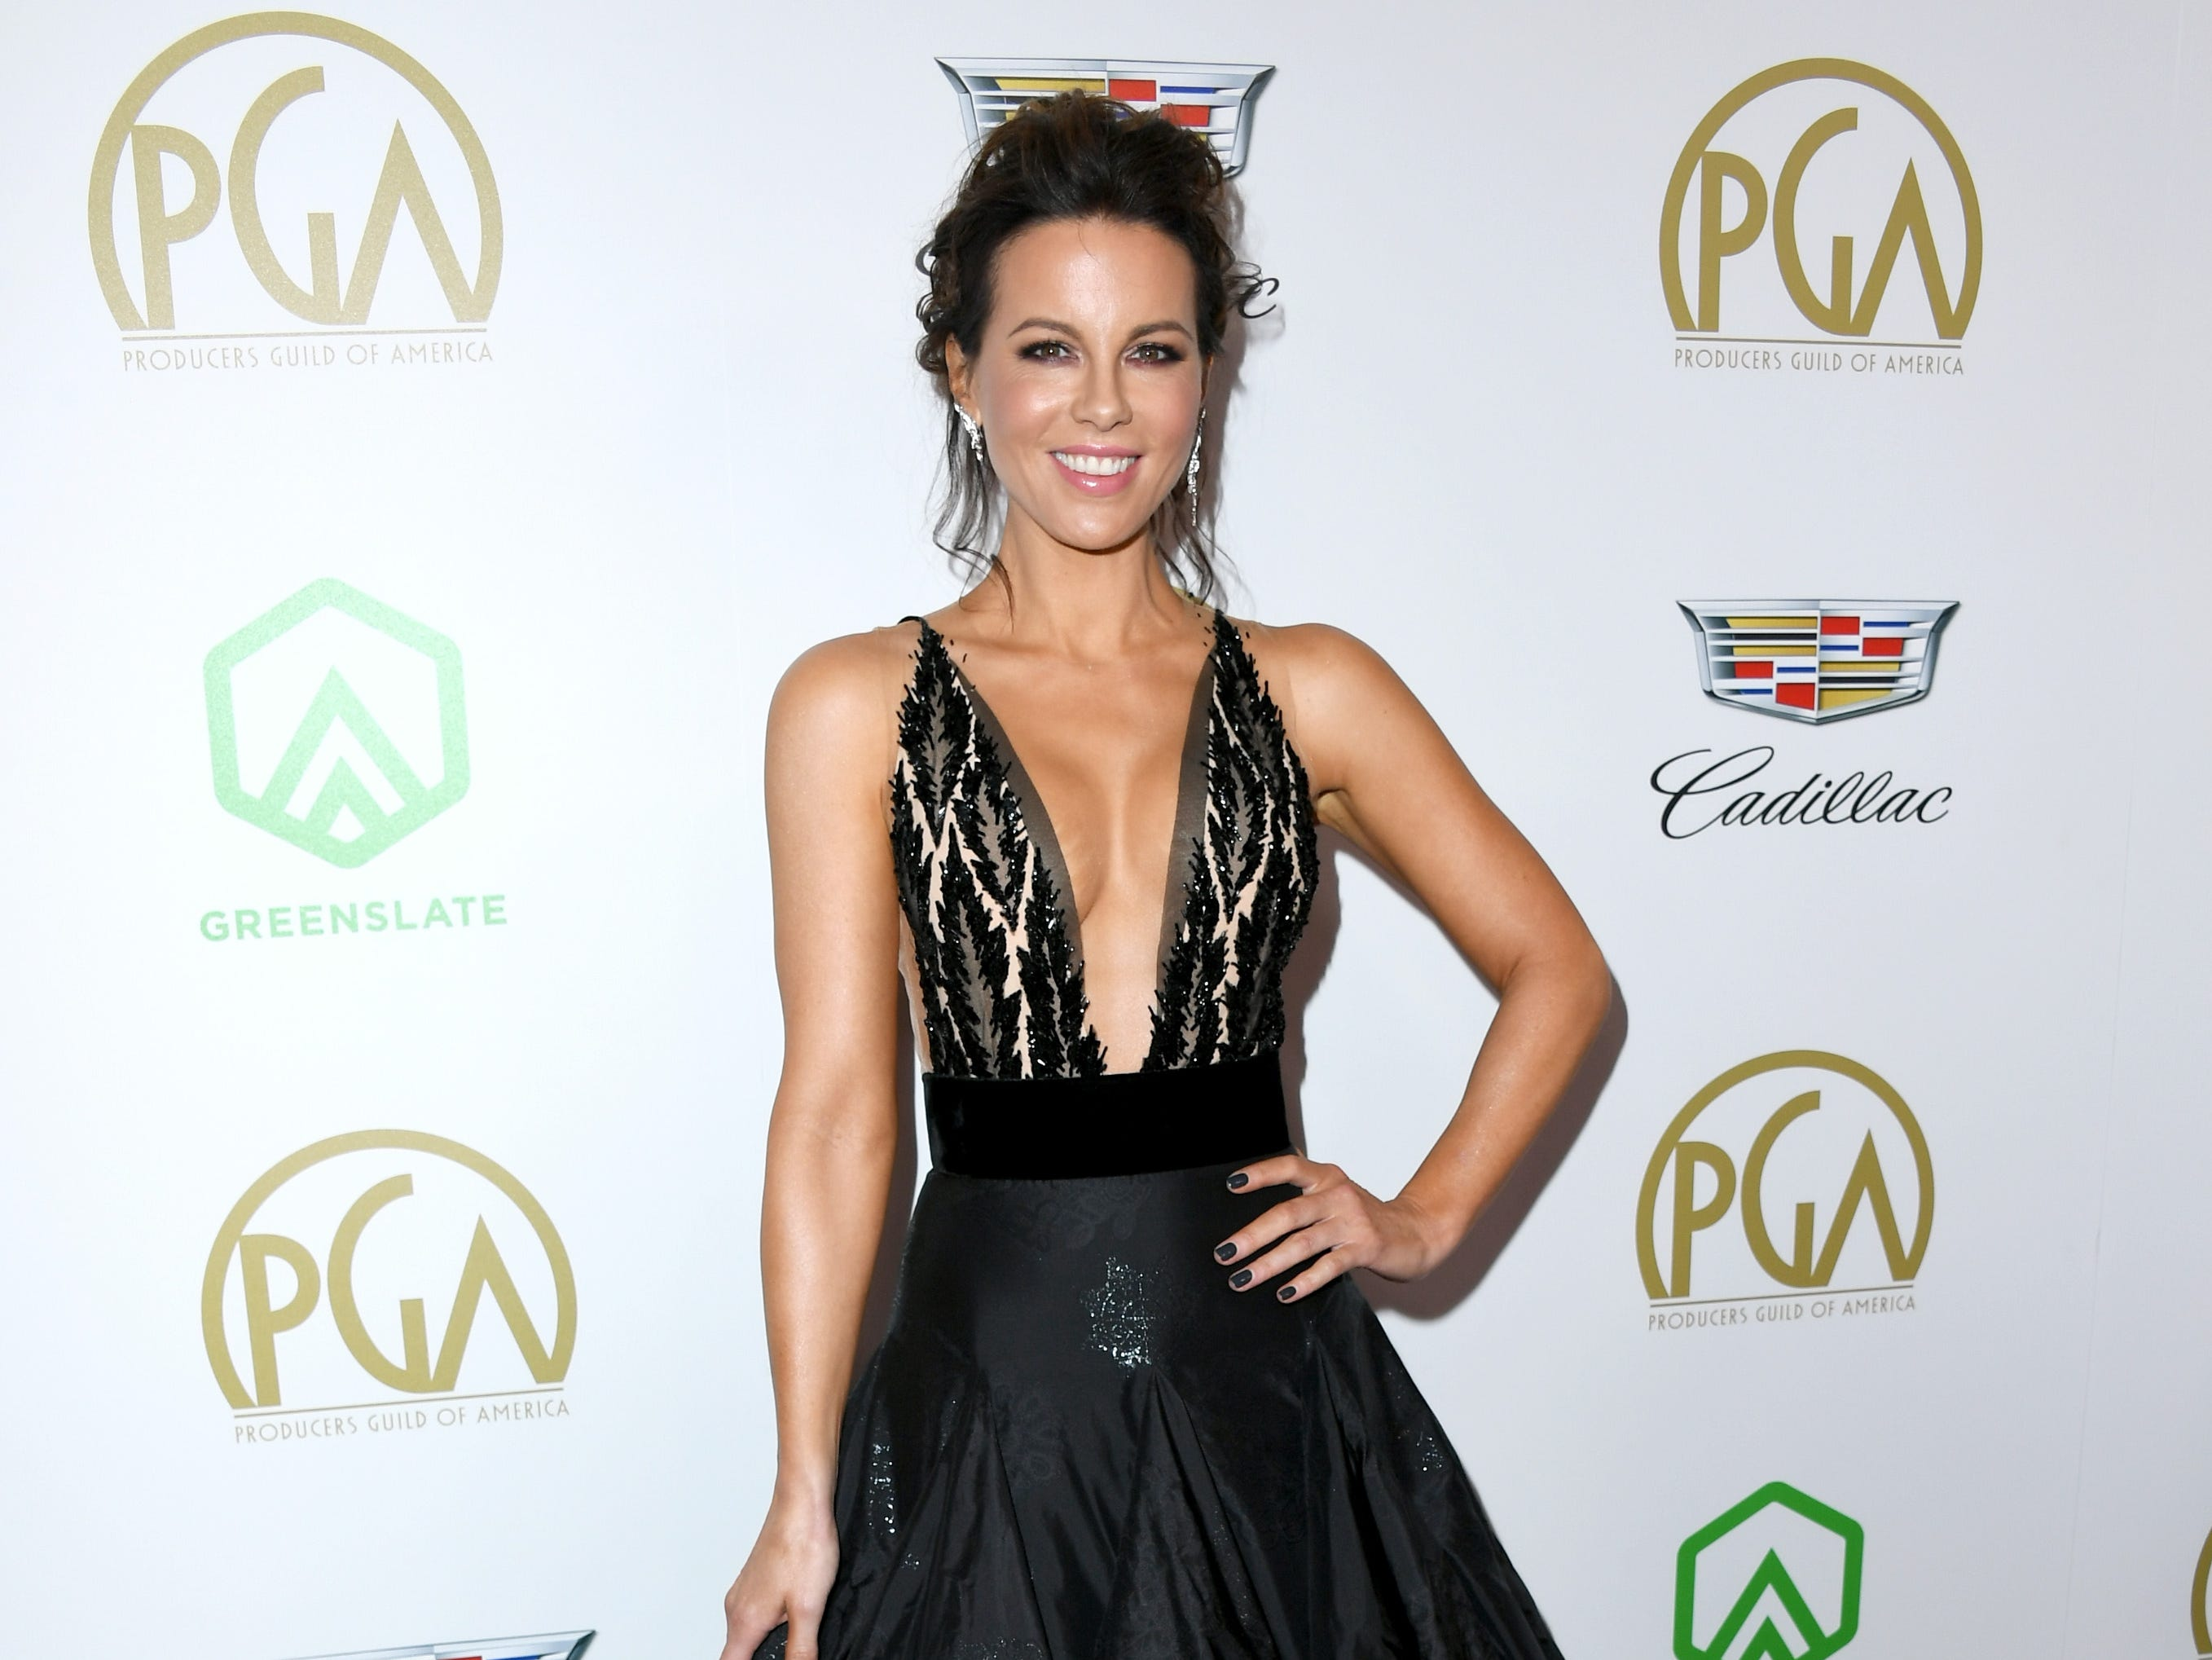 BEVERLY HILLS, CA - JANUARY 19:  Kate Beckinsale attends the 30th annual Producers Guild Awards at The Beverly Hilton Hotel on January 19, 2019 in Beverly Hills, California.  (Photo by Jon Kopaloff/FilmMagic) ORG XMIT: 775276067 ORIG FILE ID: 1085408886